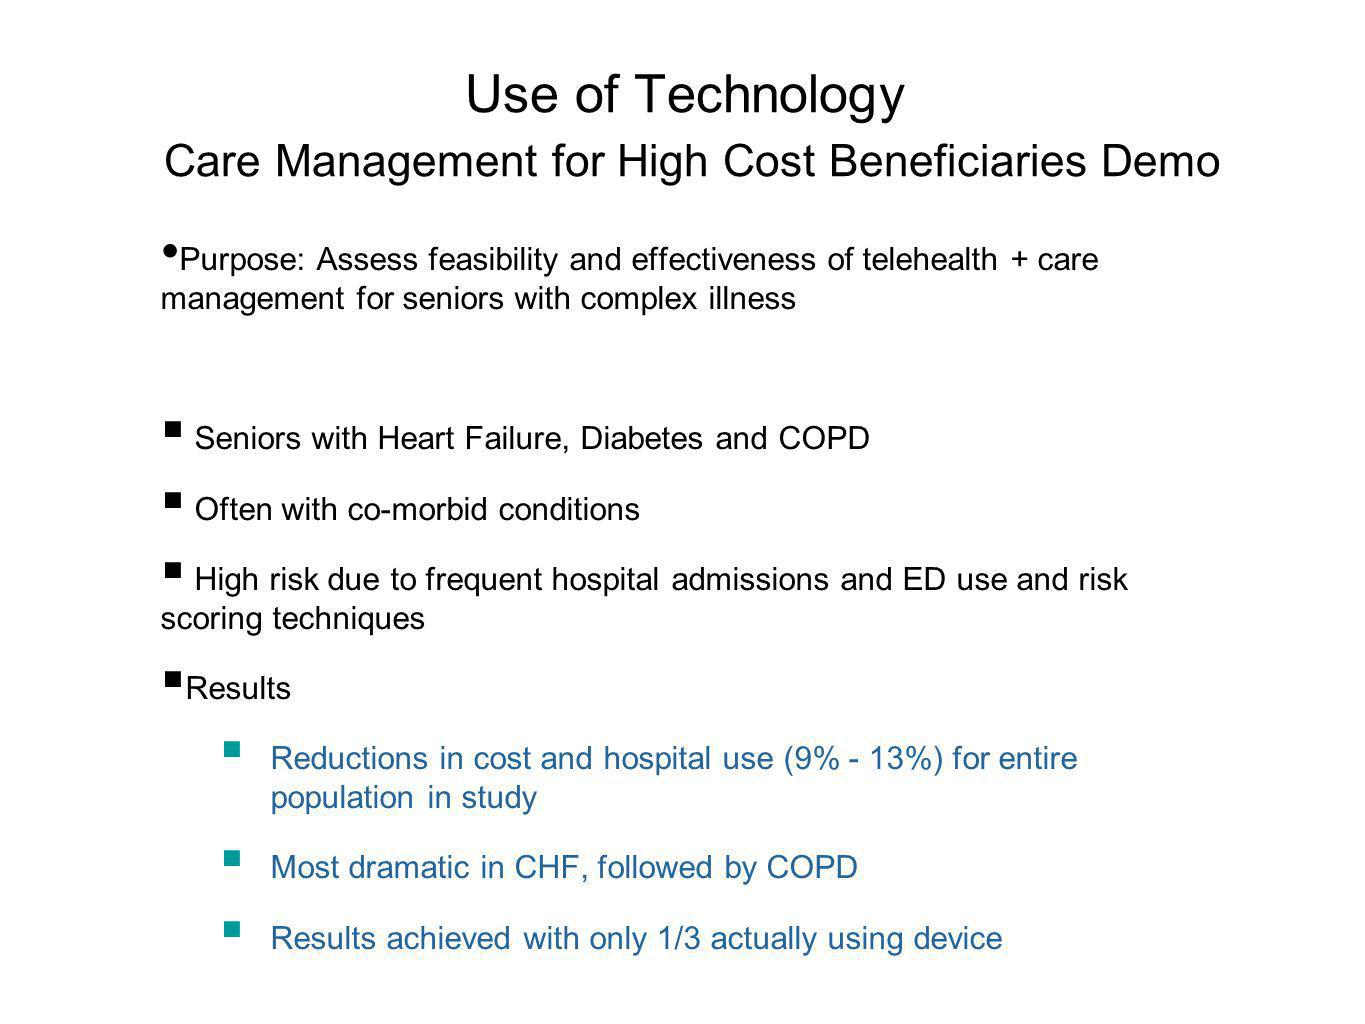 Use of Technology Care Management for High Cost Beneficiaries Demo Purpose: Assess feasibility and effectiveness of telehealth + care management for seniors with complex illness Seniors with Heart Failure, Diabetes and COPD Often with co-morbid conditions High risk due to frequent hospital admissions and ED use and risk scoring techniques Results Reductions in cost and hospital use (9% - 13%) for entire population in study Most dramatic in CHF, followed by COPD Results achieved with only 1/3 actually using device